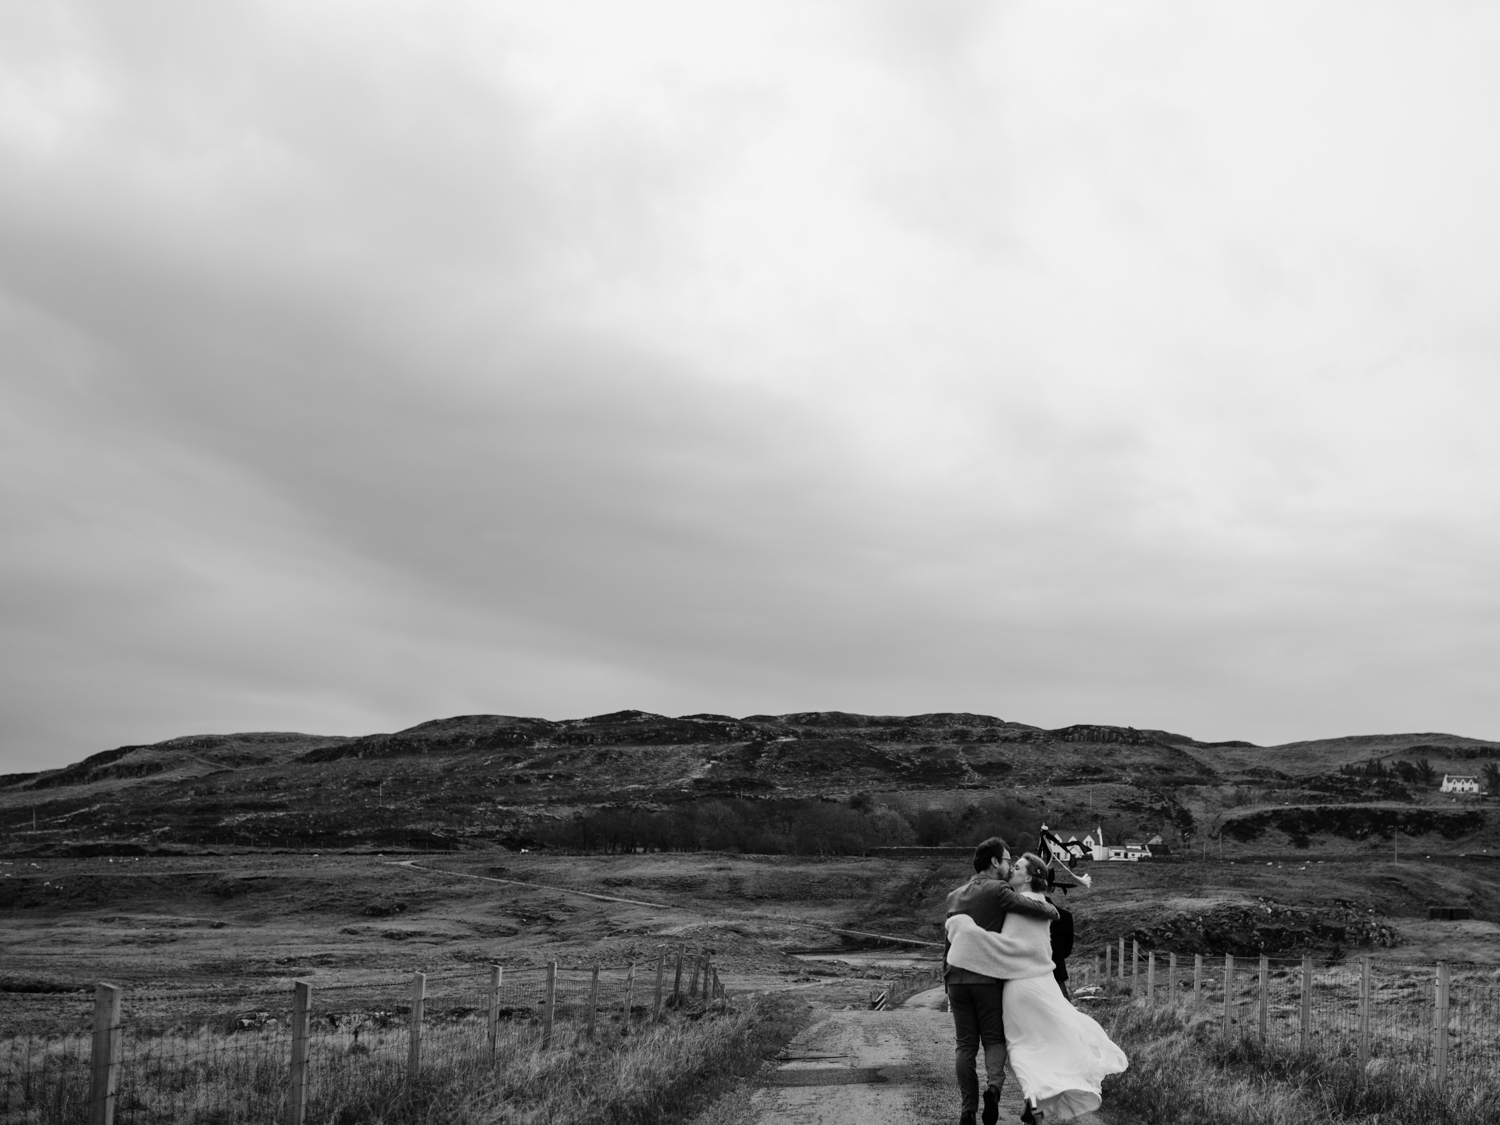 capyture-wedding-photographer-destination-nature-intimate-wedding-isle-of-skye-scotland-462